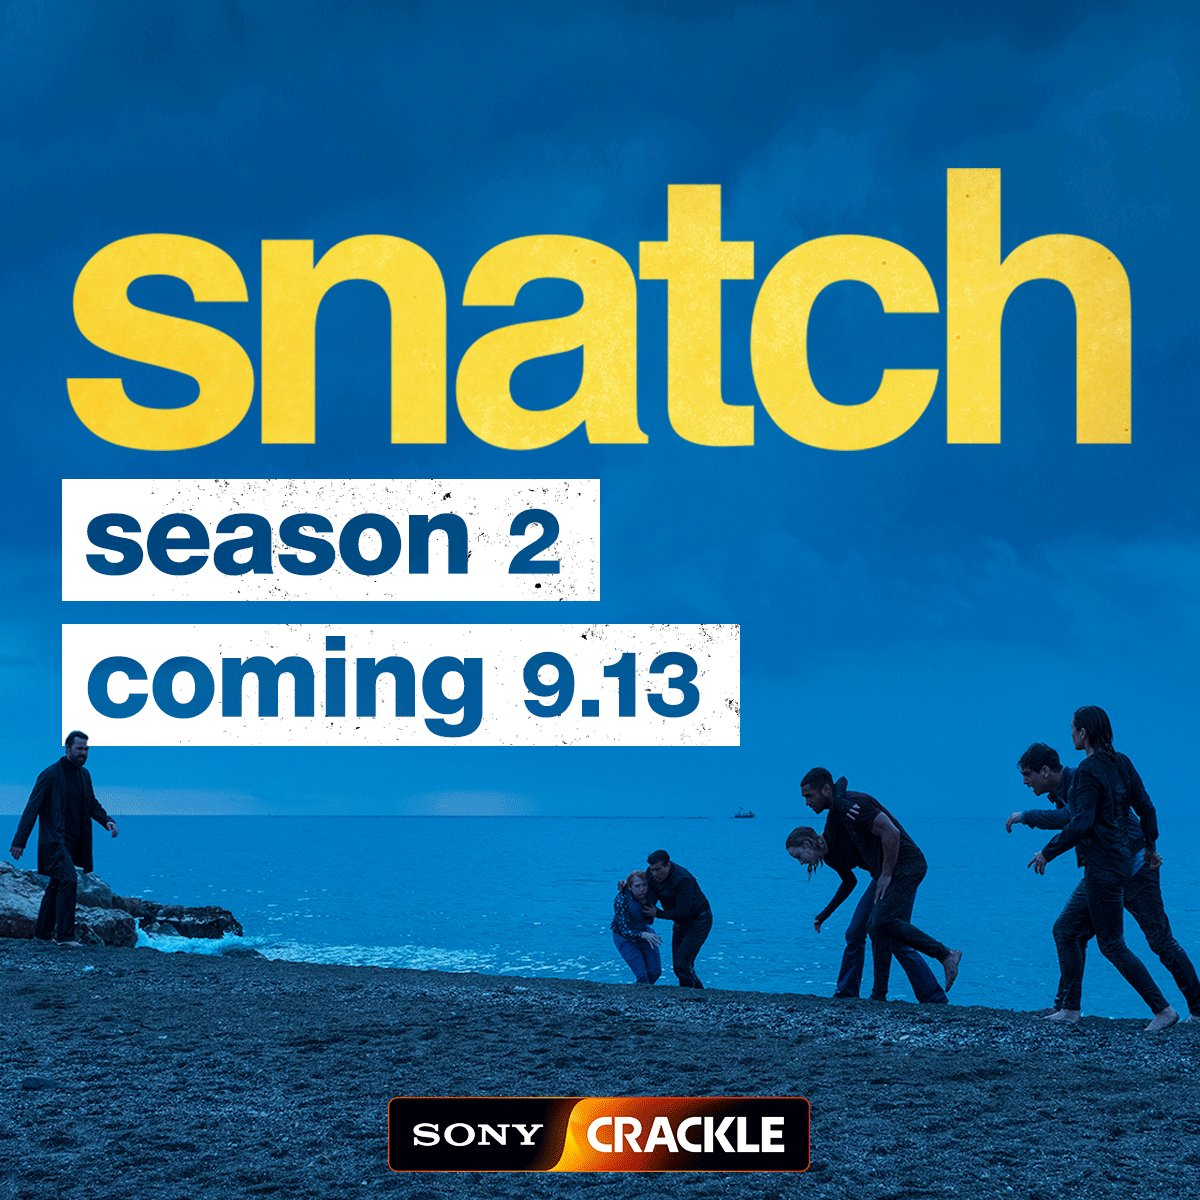 Season 2 of @Snatch starring @ItsLucien hits our screens this September on @SonyCrackle . We can't wait to see what the gang gets up to this time! #SnatchCrackle